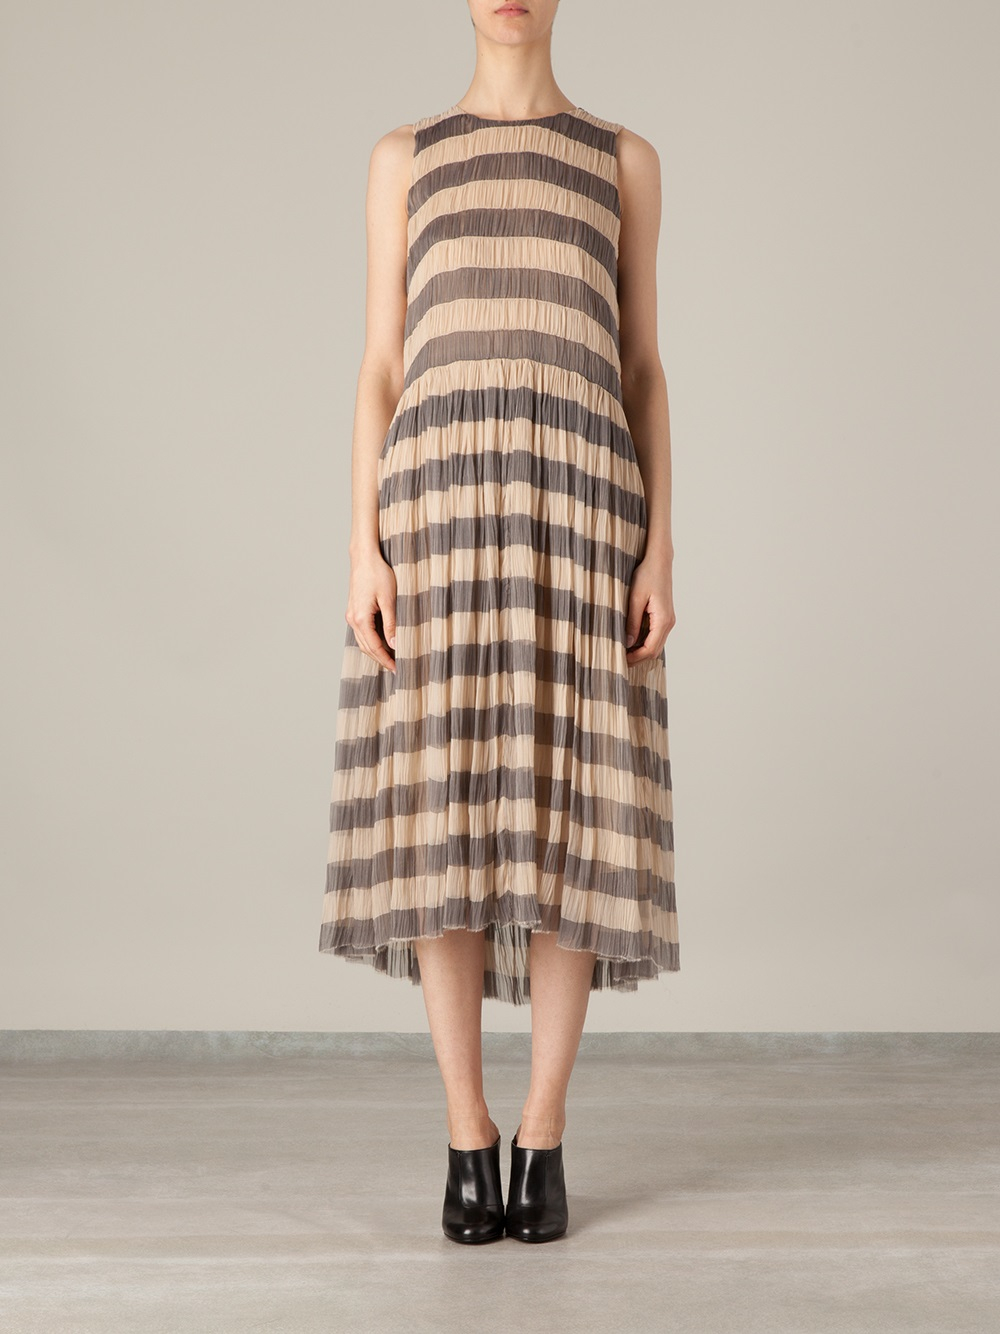 Lyst Sara Lanzi Striped Midi Dress In Gray